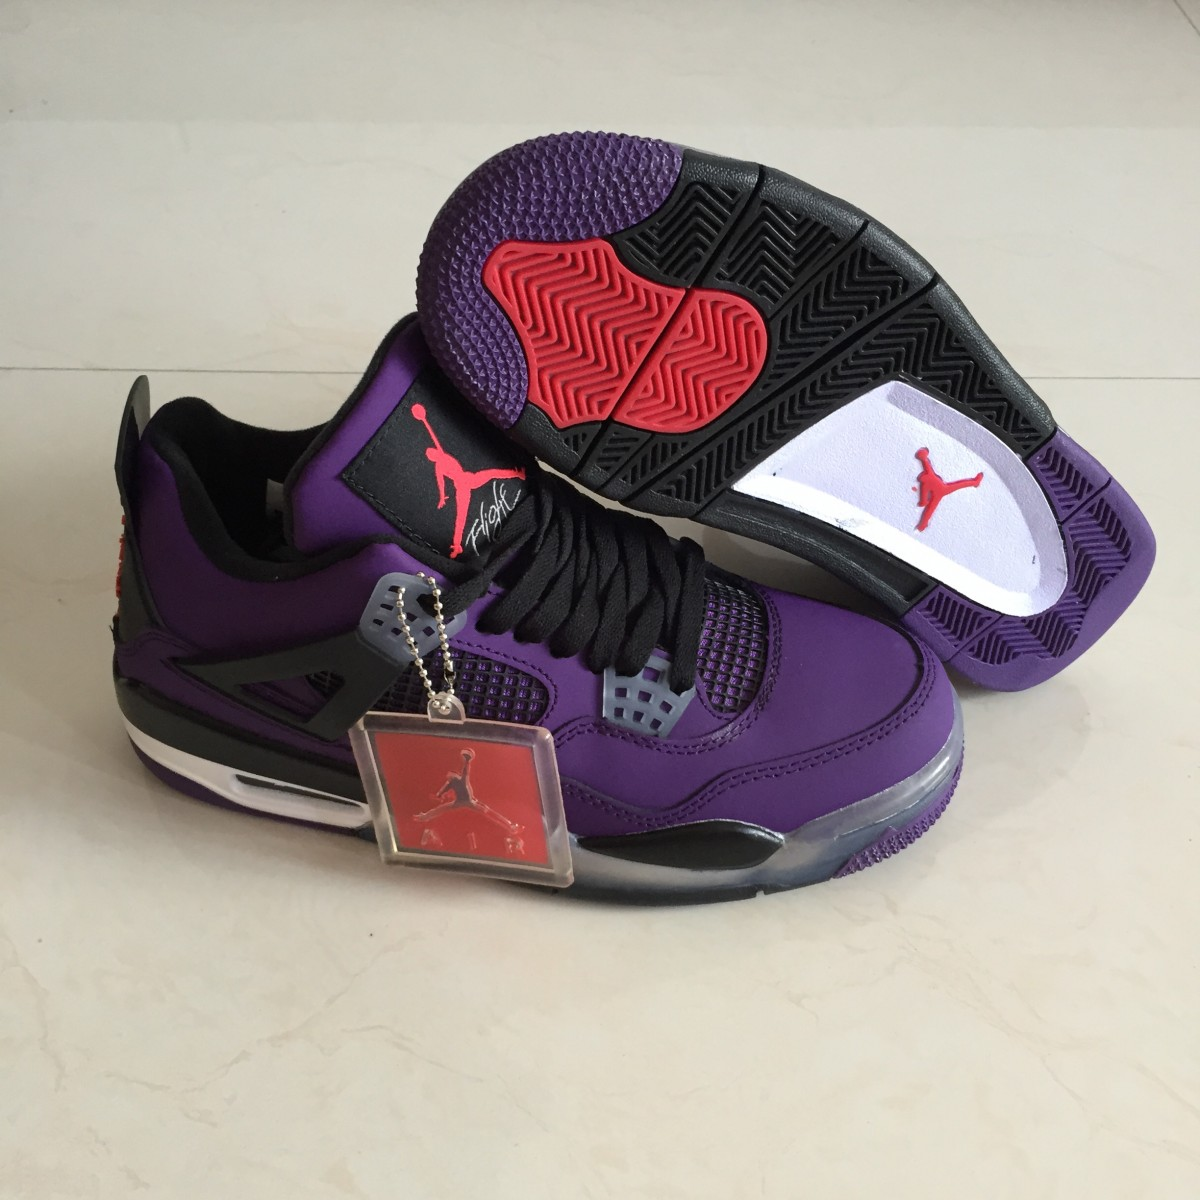 designer fashion e7724 54db0 Air Jordan 4 Travis Scott Purple Shoes